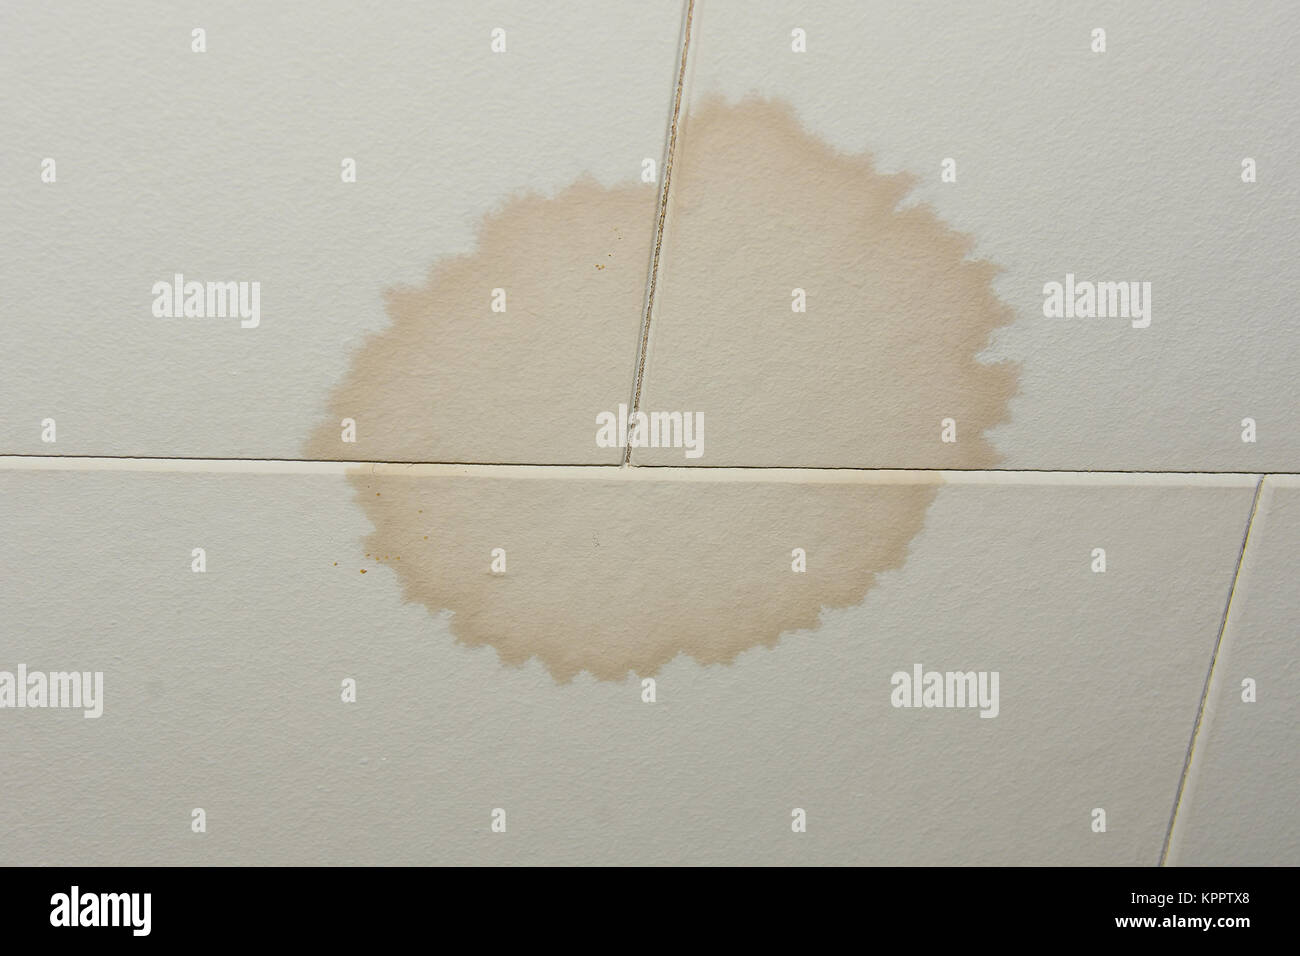 Leak ceiling stock photos leak ceiling stock images alamy water stained ceiling tile from a leaking roof stock image doublecrazyfo Choice Image